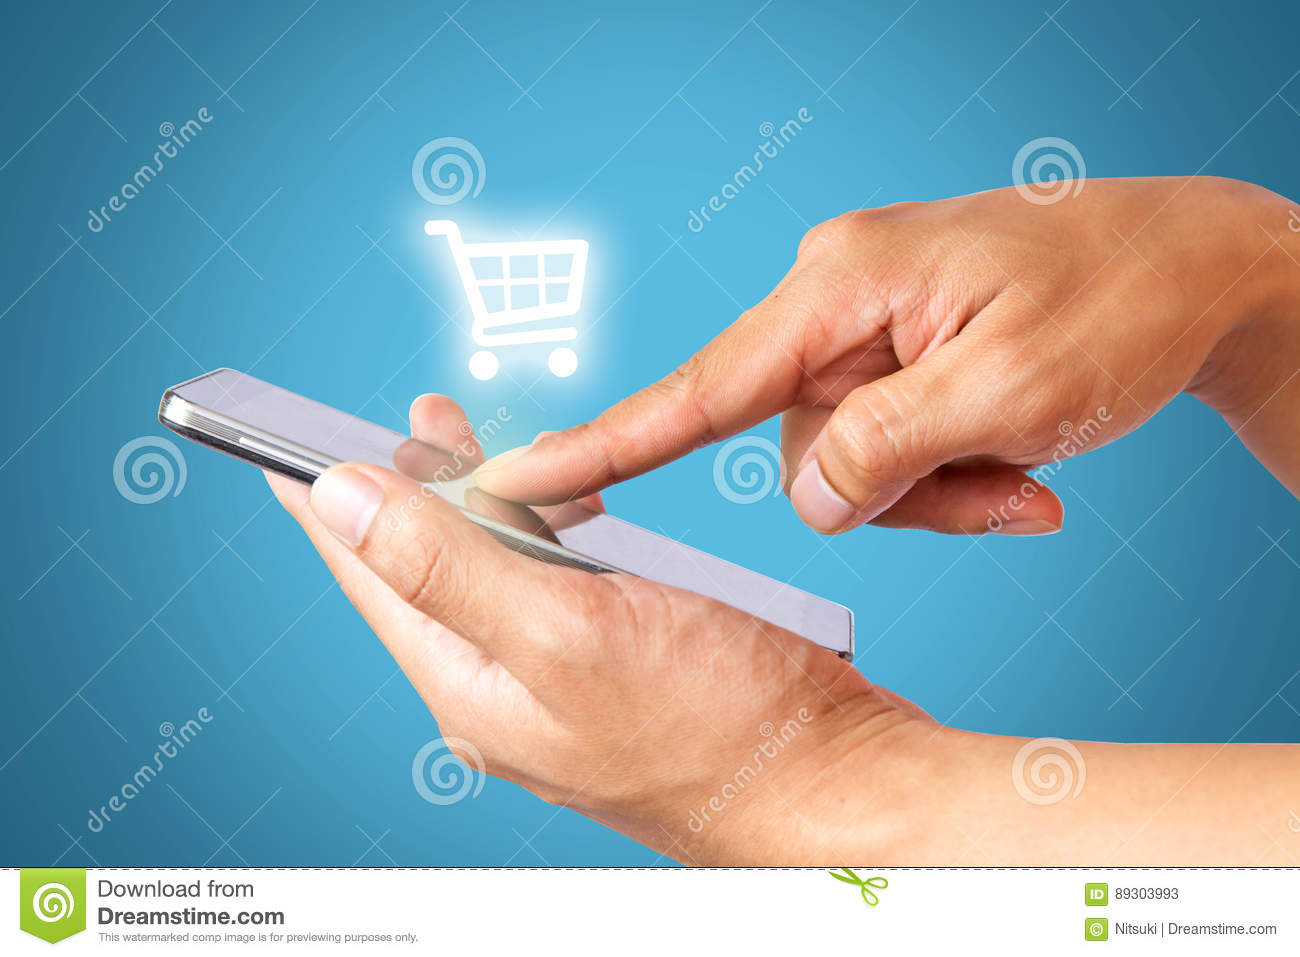 Hand using mobile phone online shopping, business and ecommerce concept.